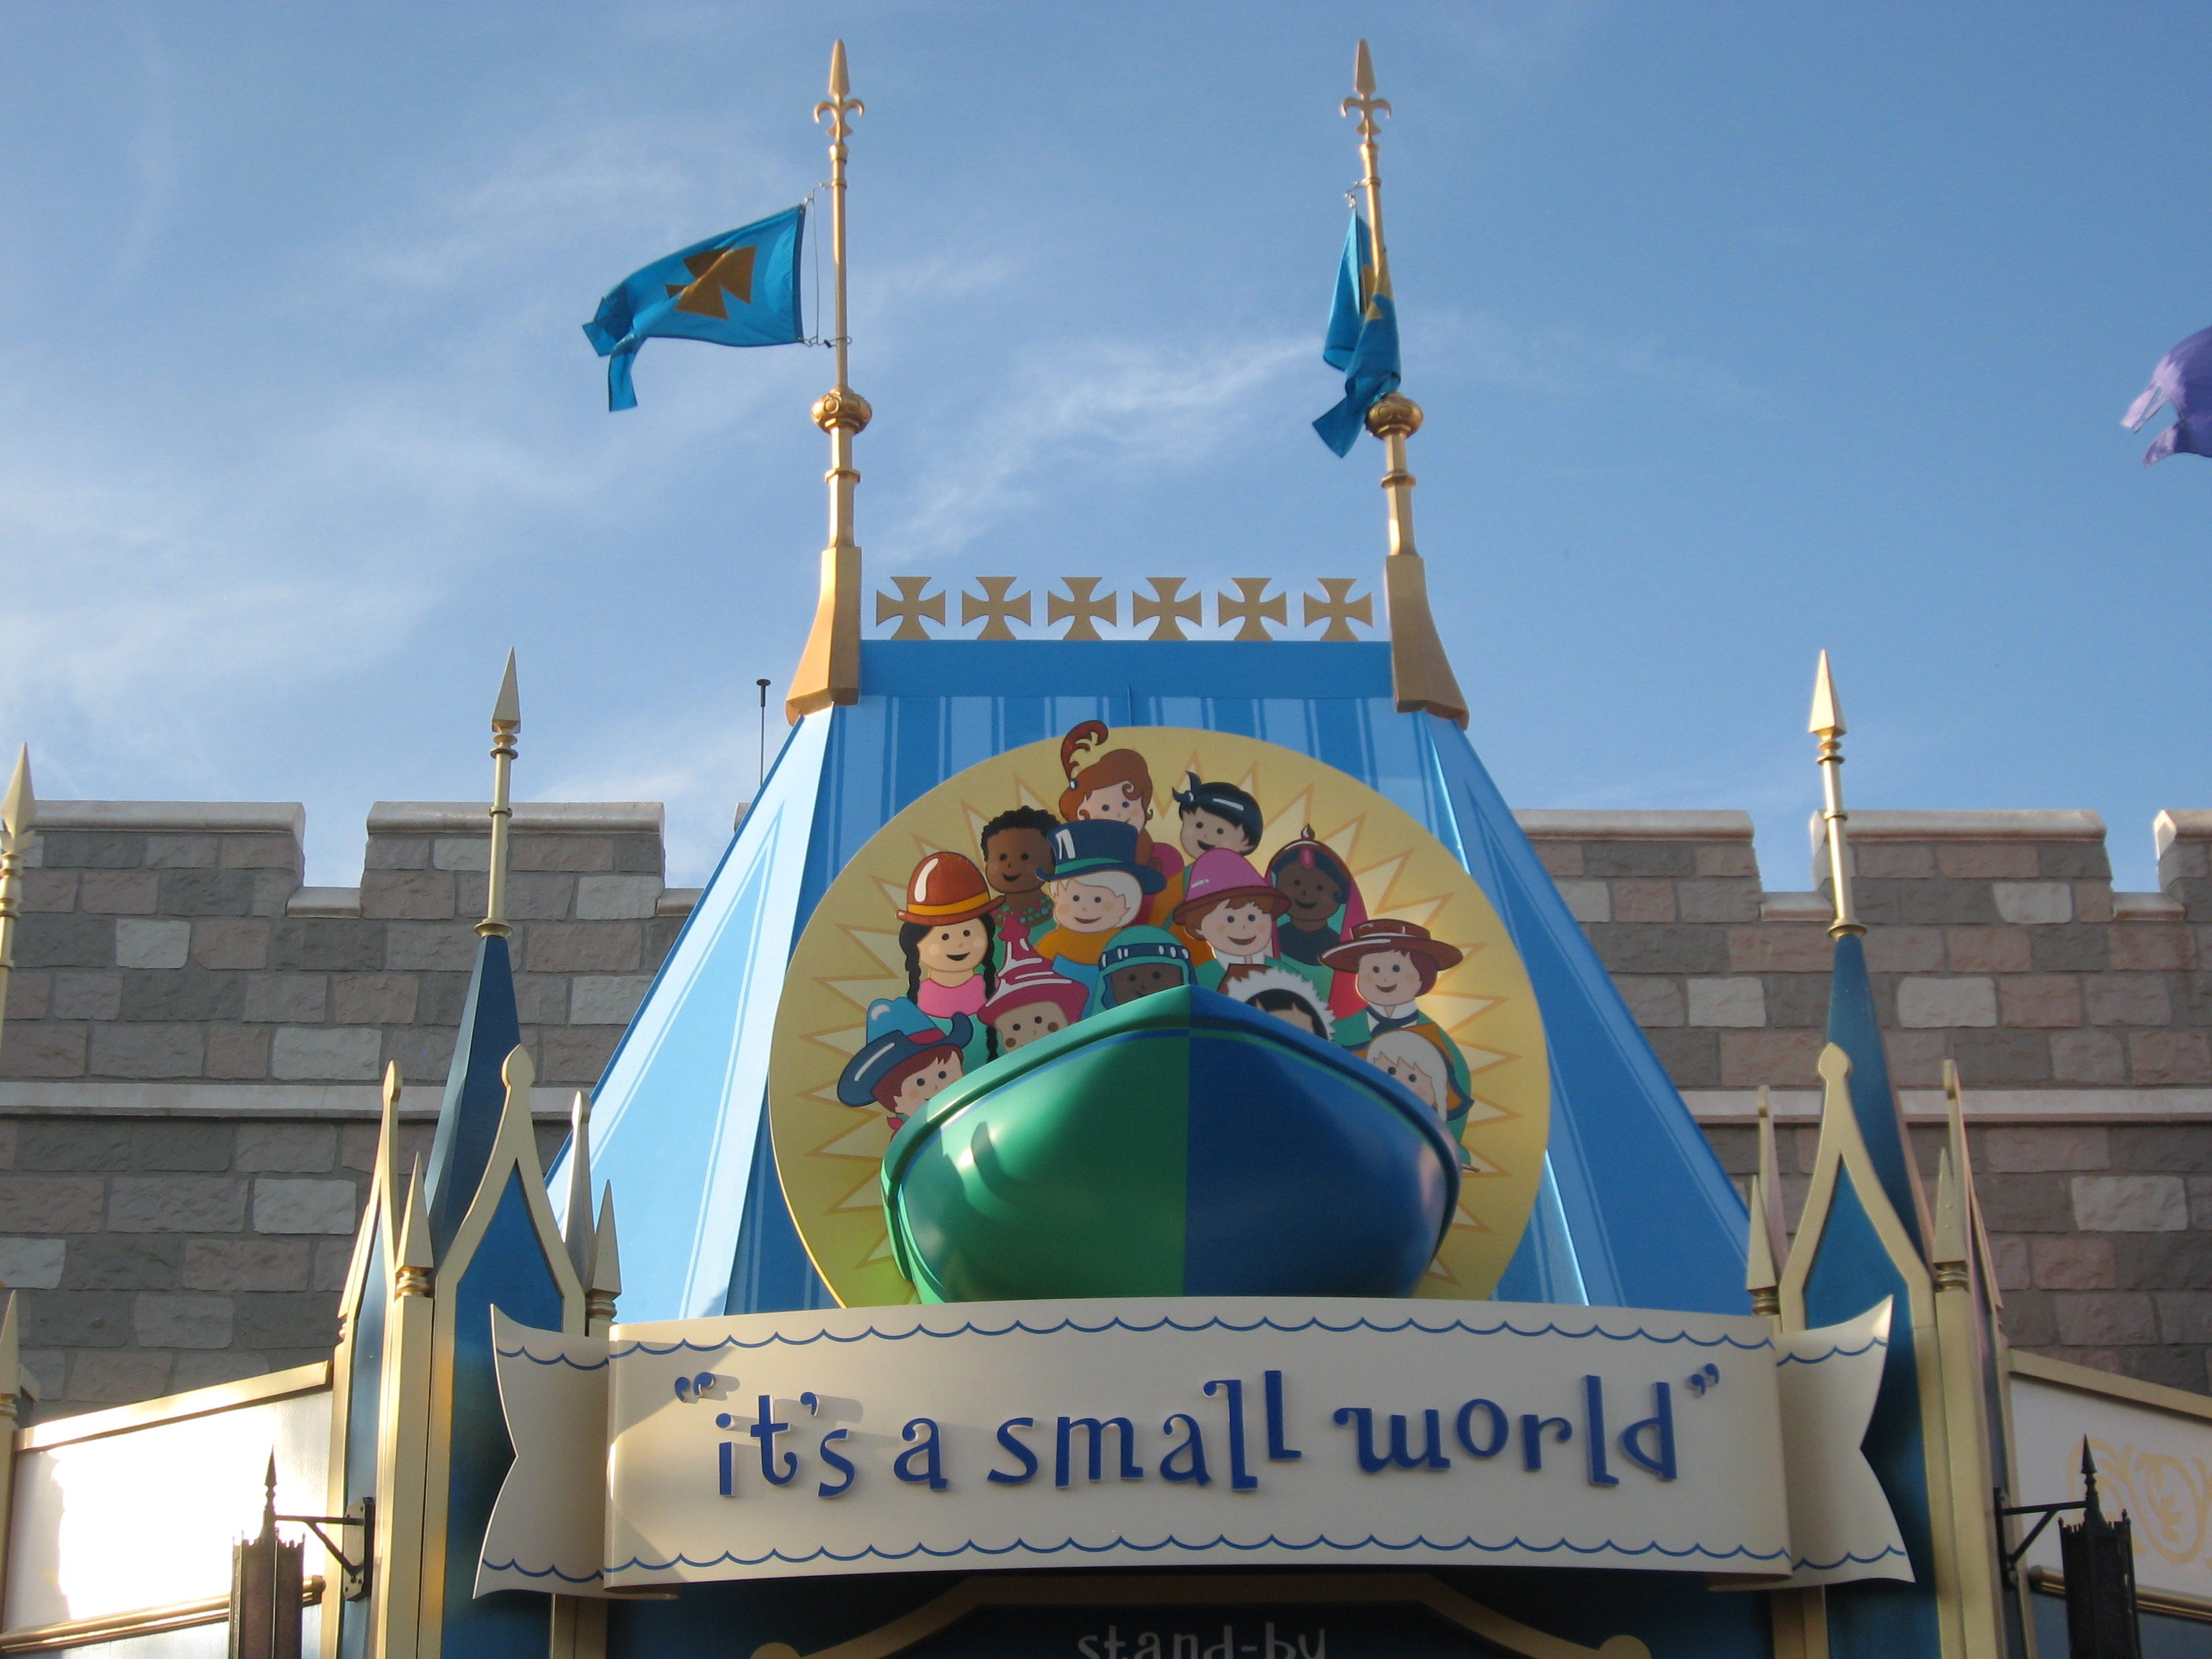 an introduction to what walt disney world represents Walt disney world® resort opened in the orlando area in 1971,  introduction walt disney world  for many, a disney vacation represents the culmination of a dream.